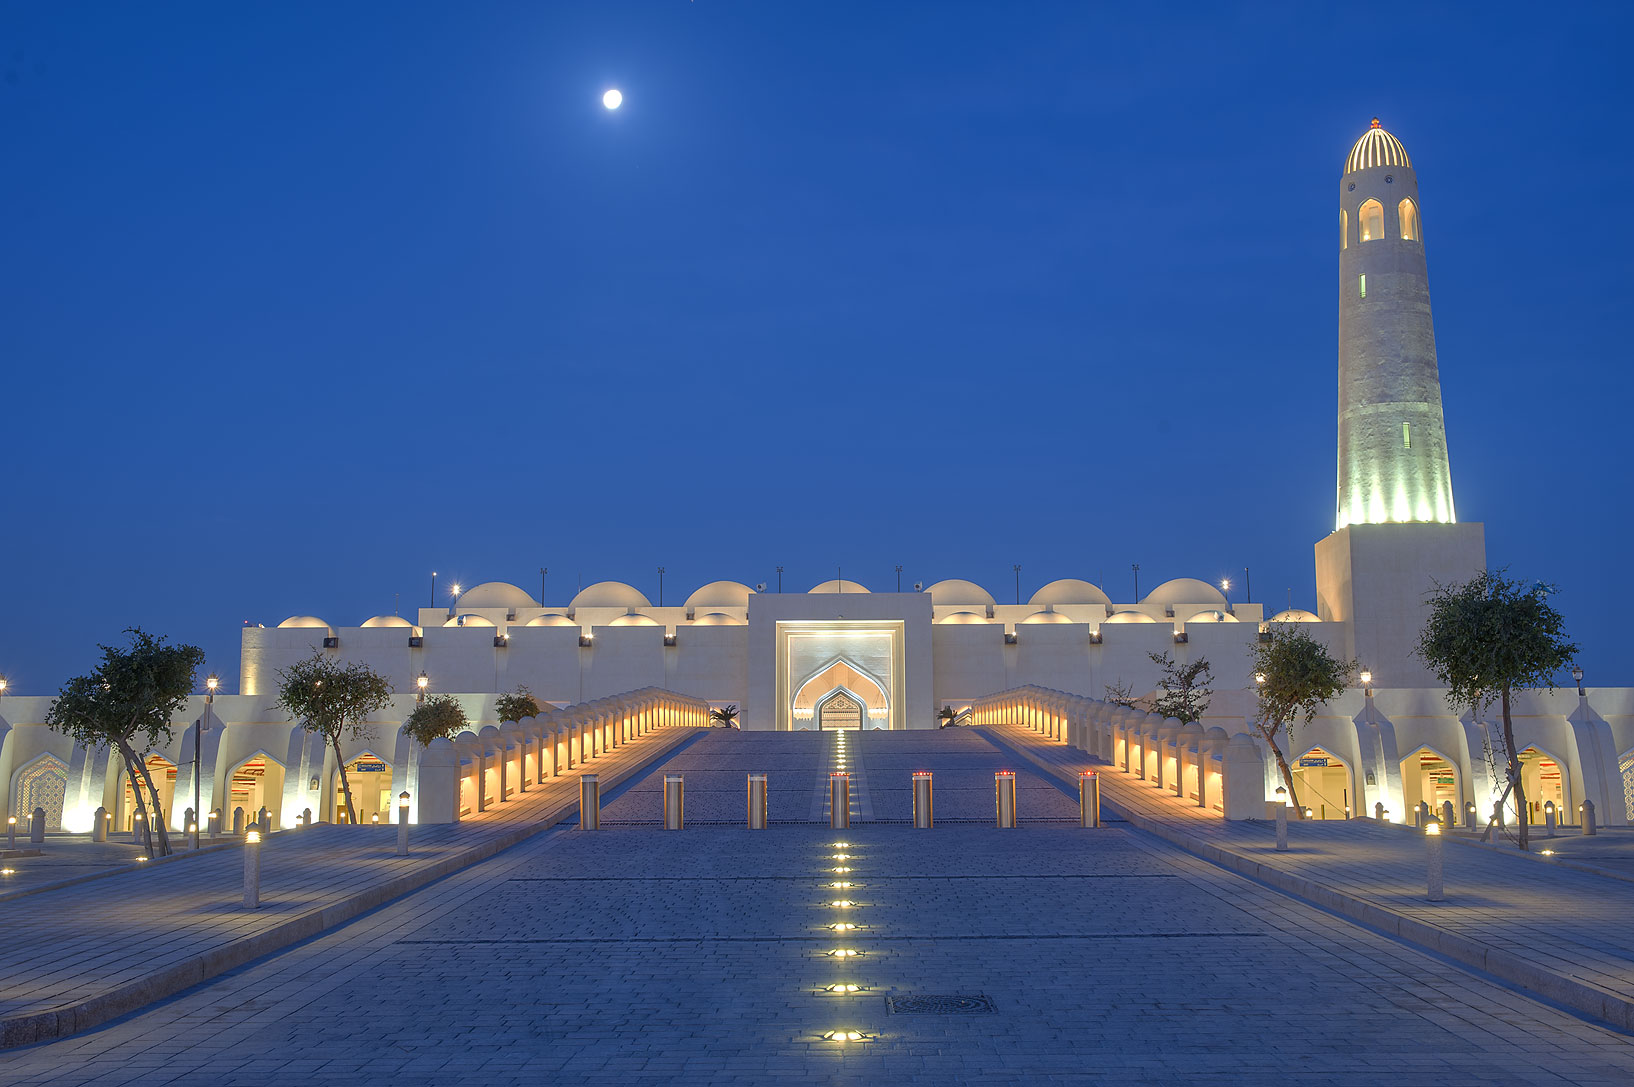 Ramp of State Mosque (Sheikh Muhammad Ibn Abdul Wahhab Mosque). Doha, Qatar